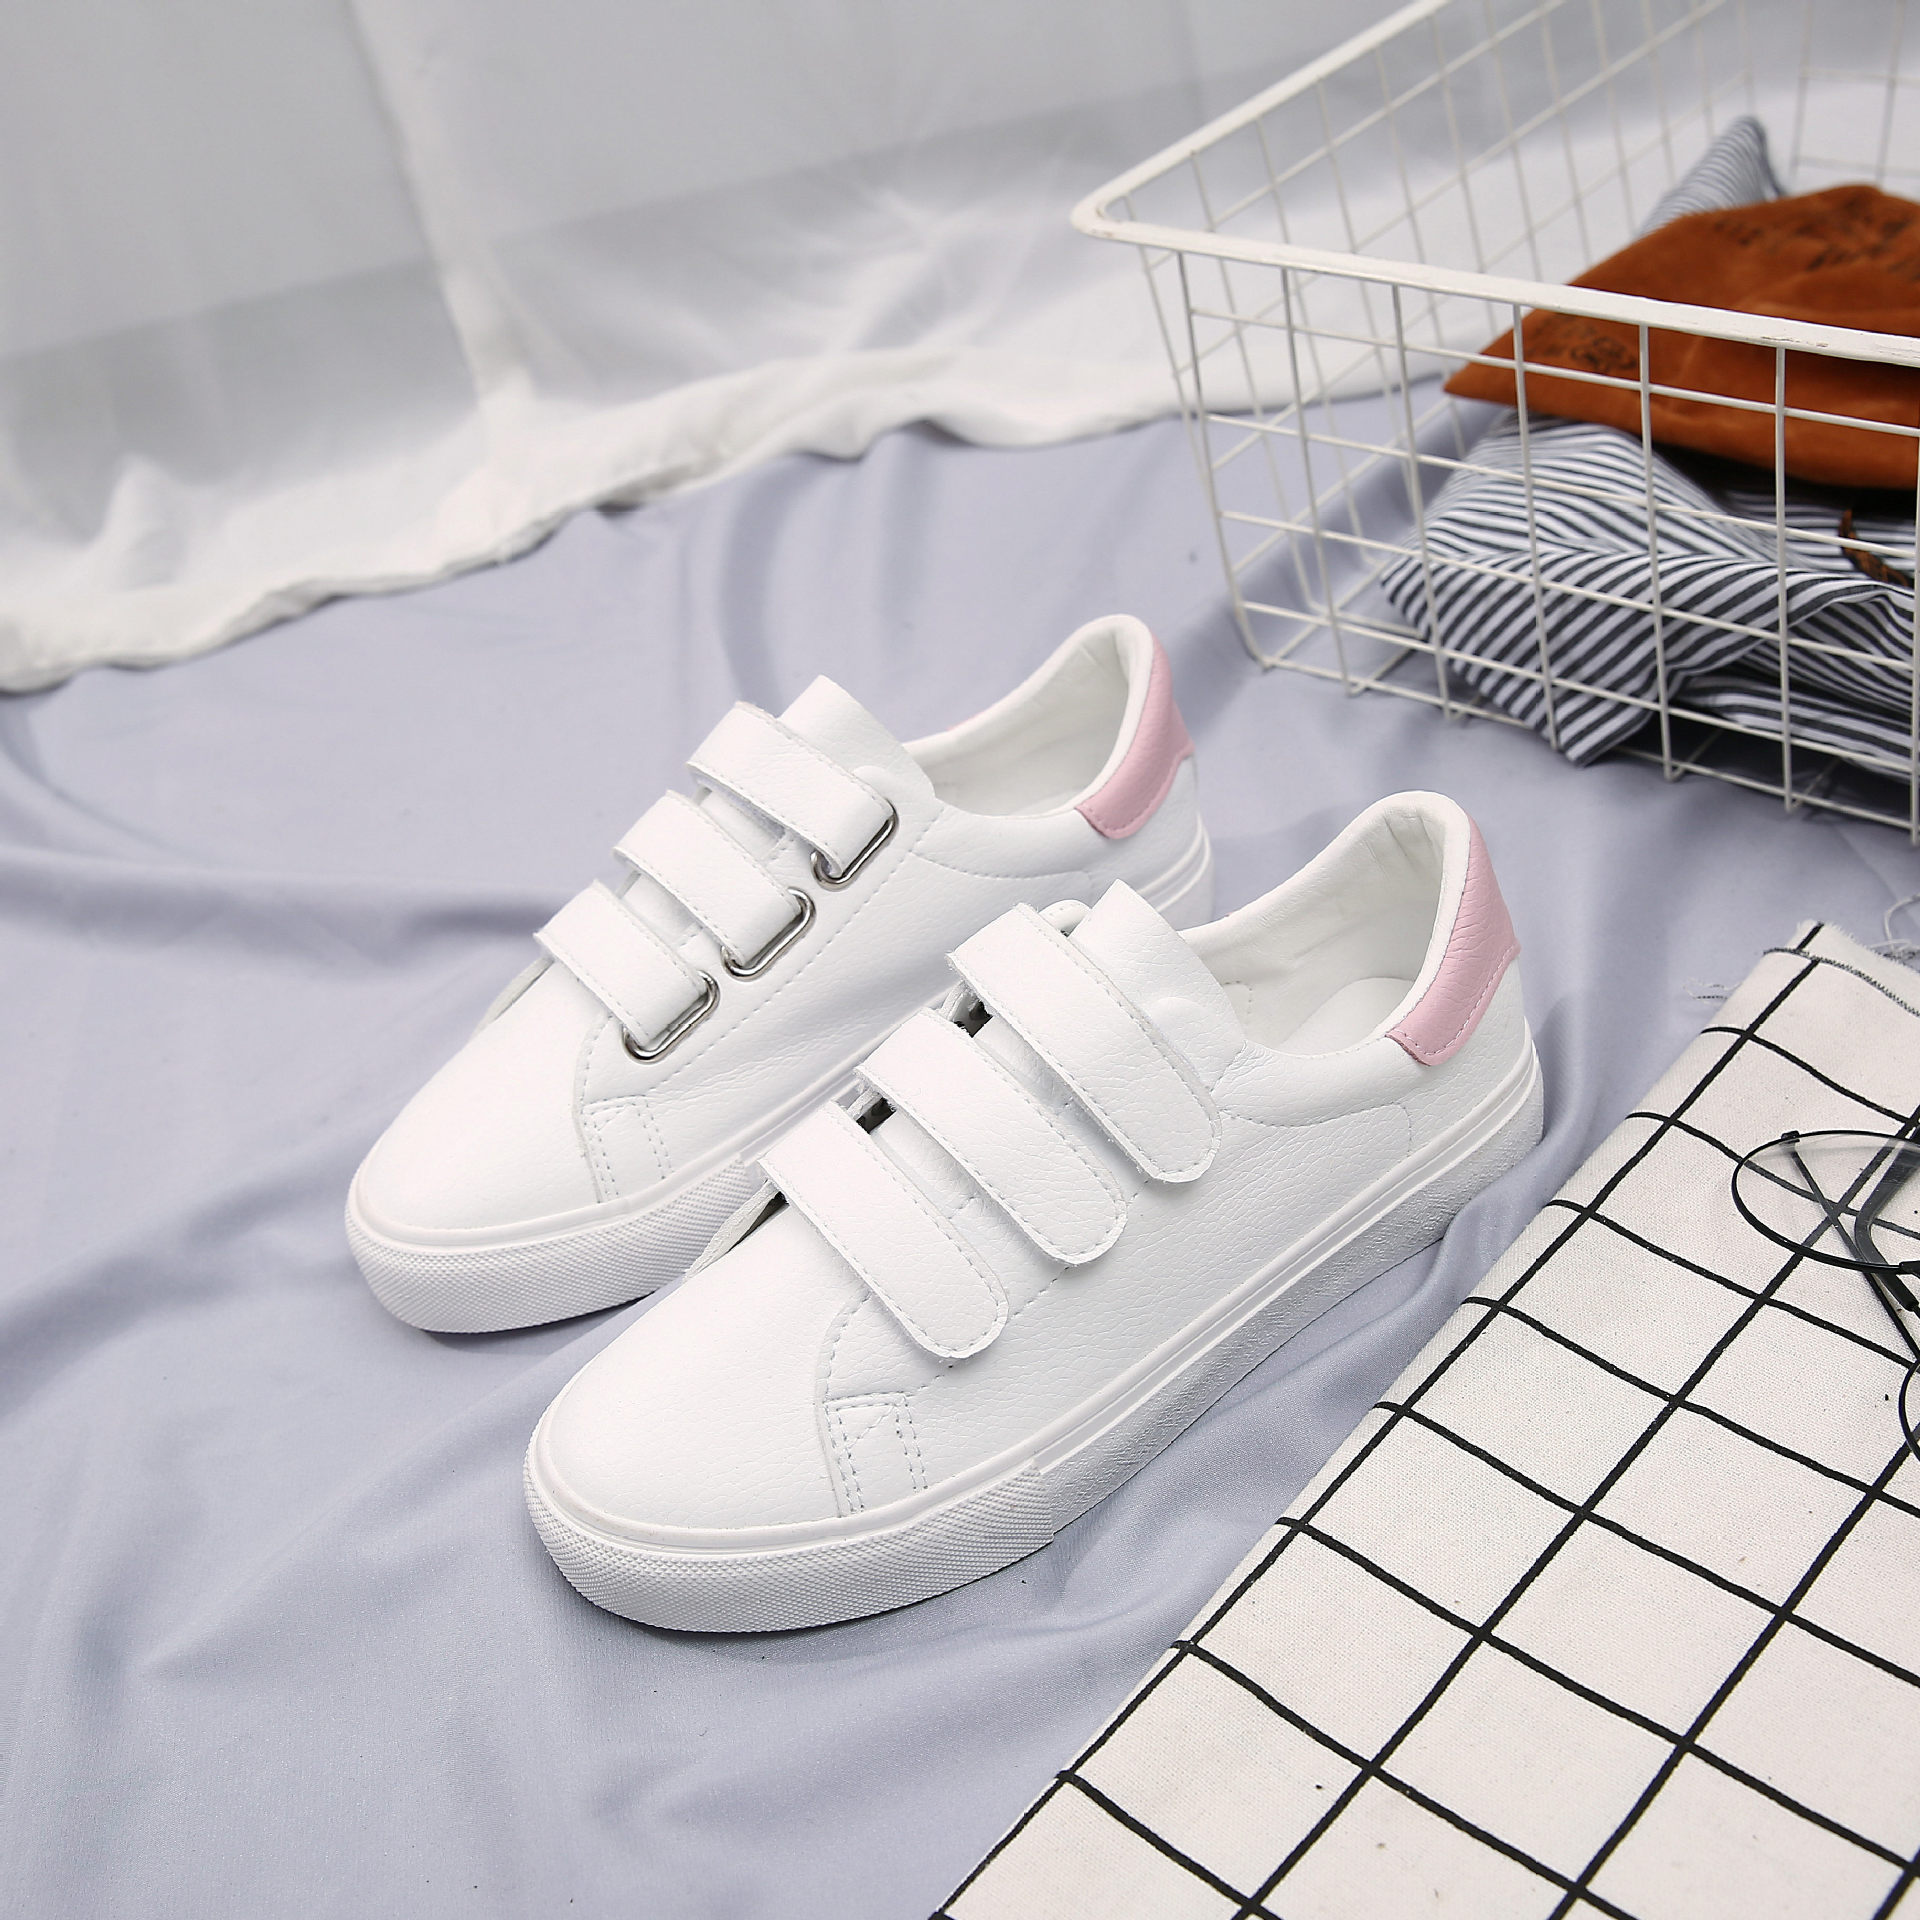 2018 New Women Shoes Spring Autumn Female White Shoes Leather Lady Sneakers All Match Hook Loop Zapatillas Mujer Casual Shoes цены онлайн